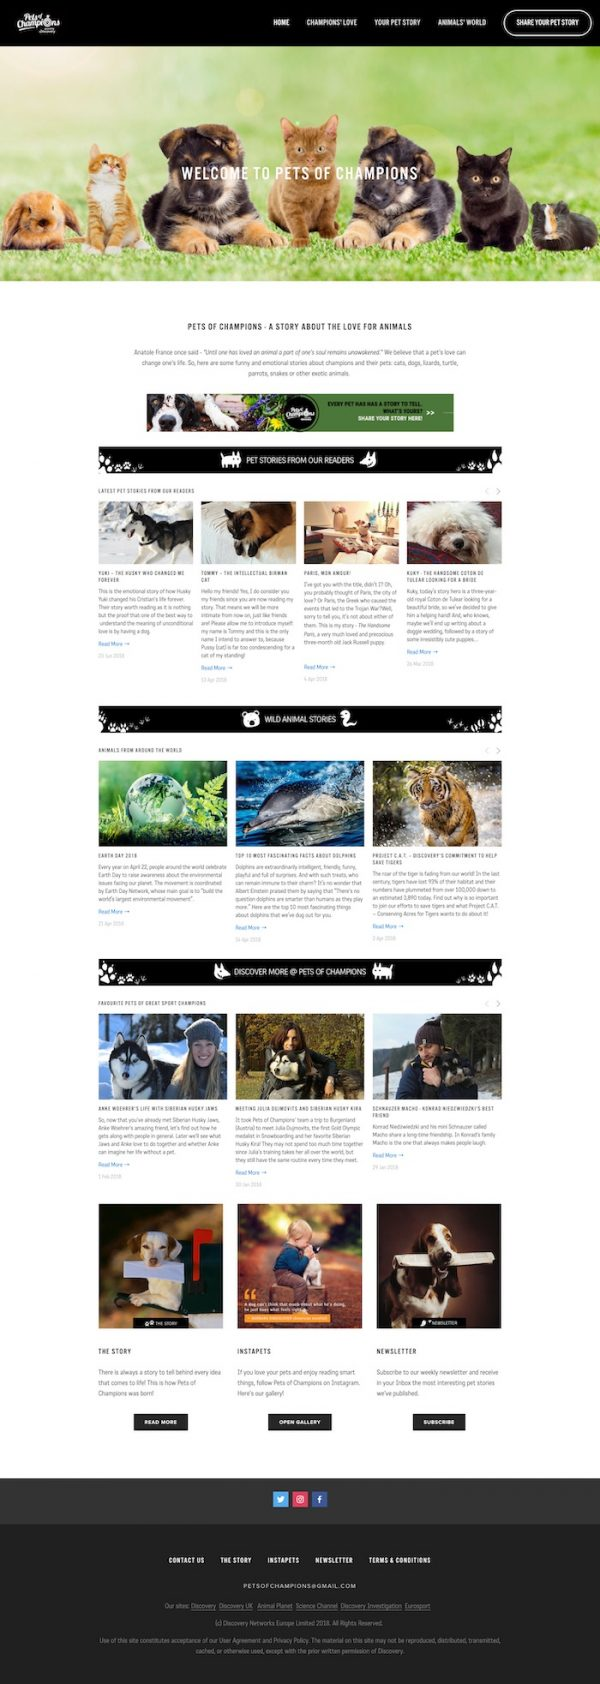 Pets of Champions - homepage